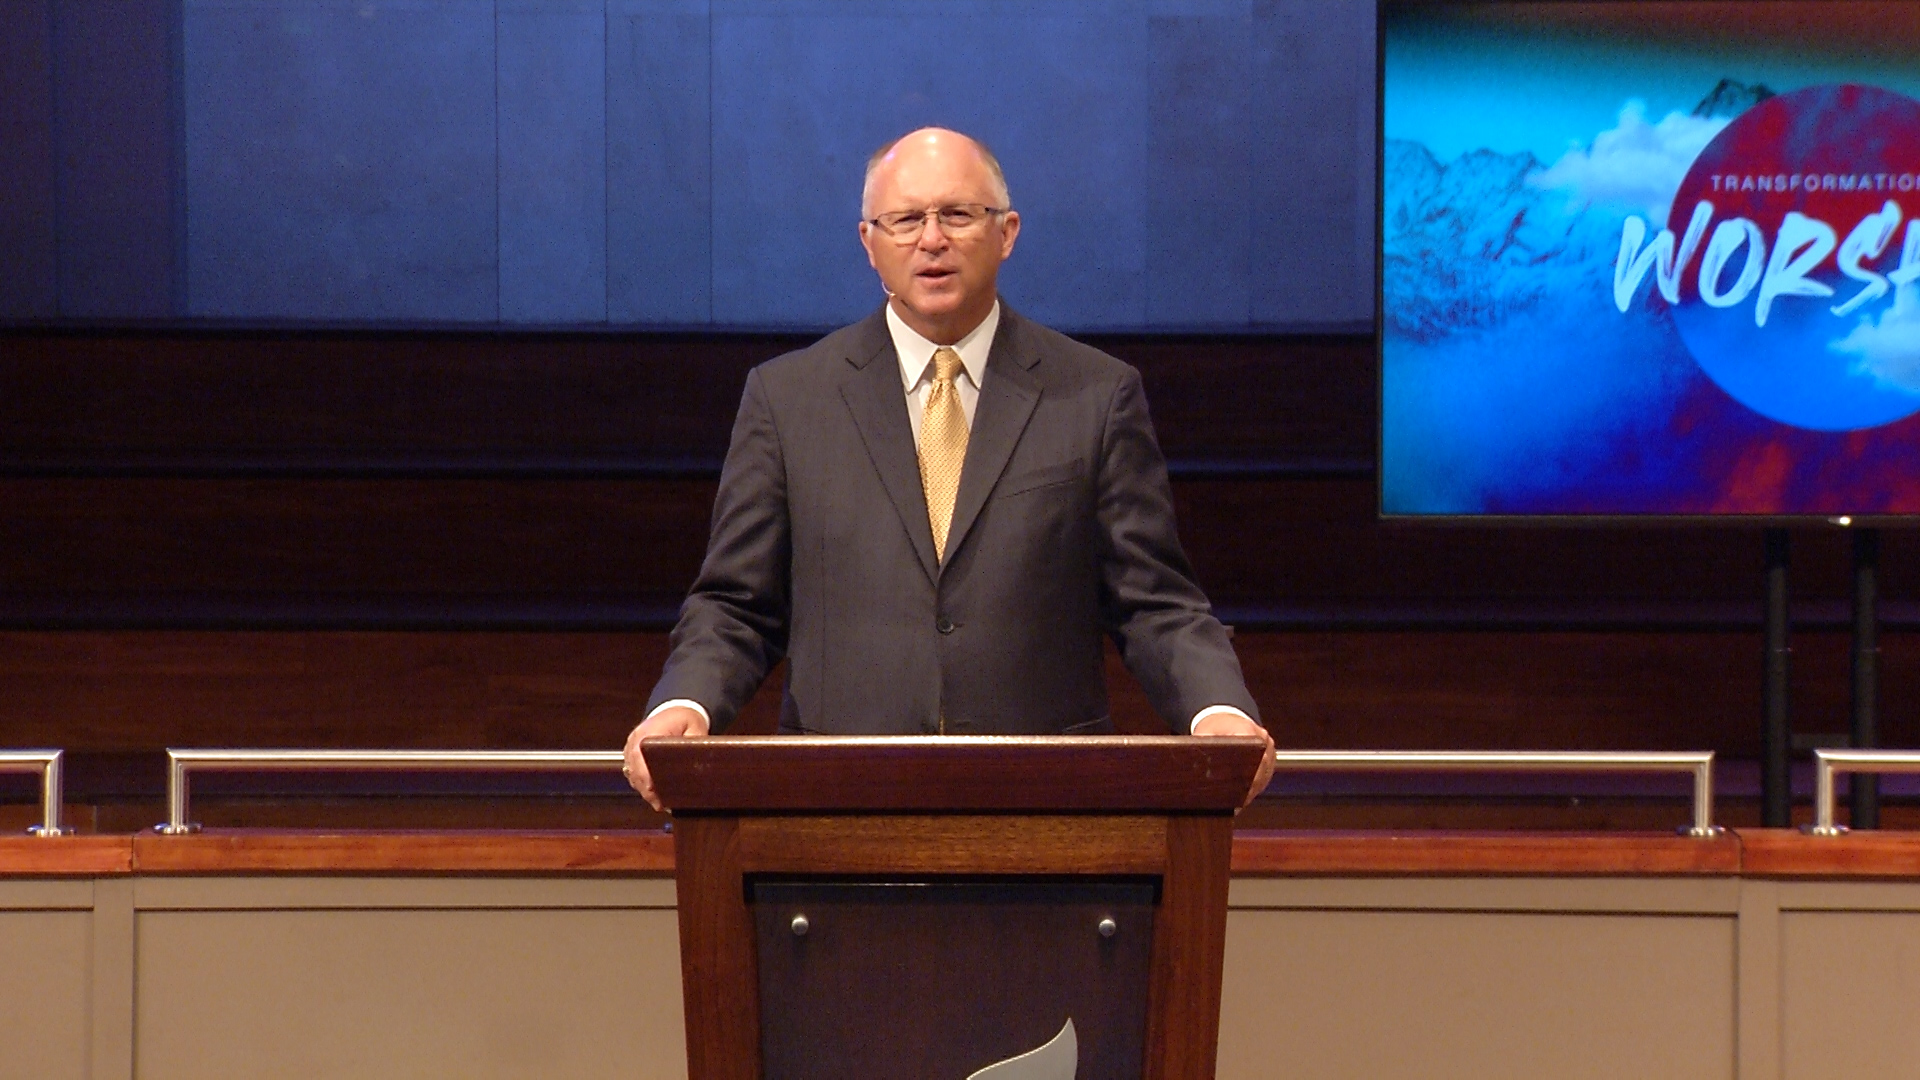 Pastor Paul Chappell: Transformation of Worship